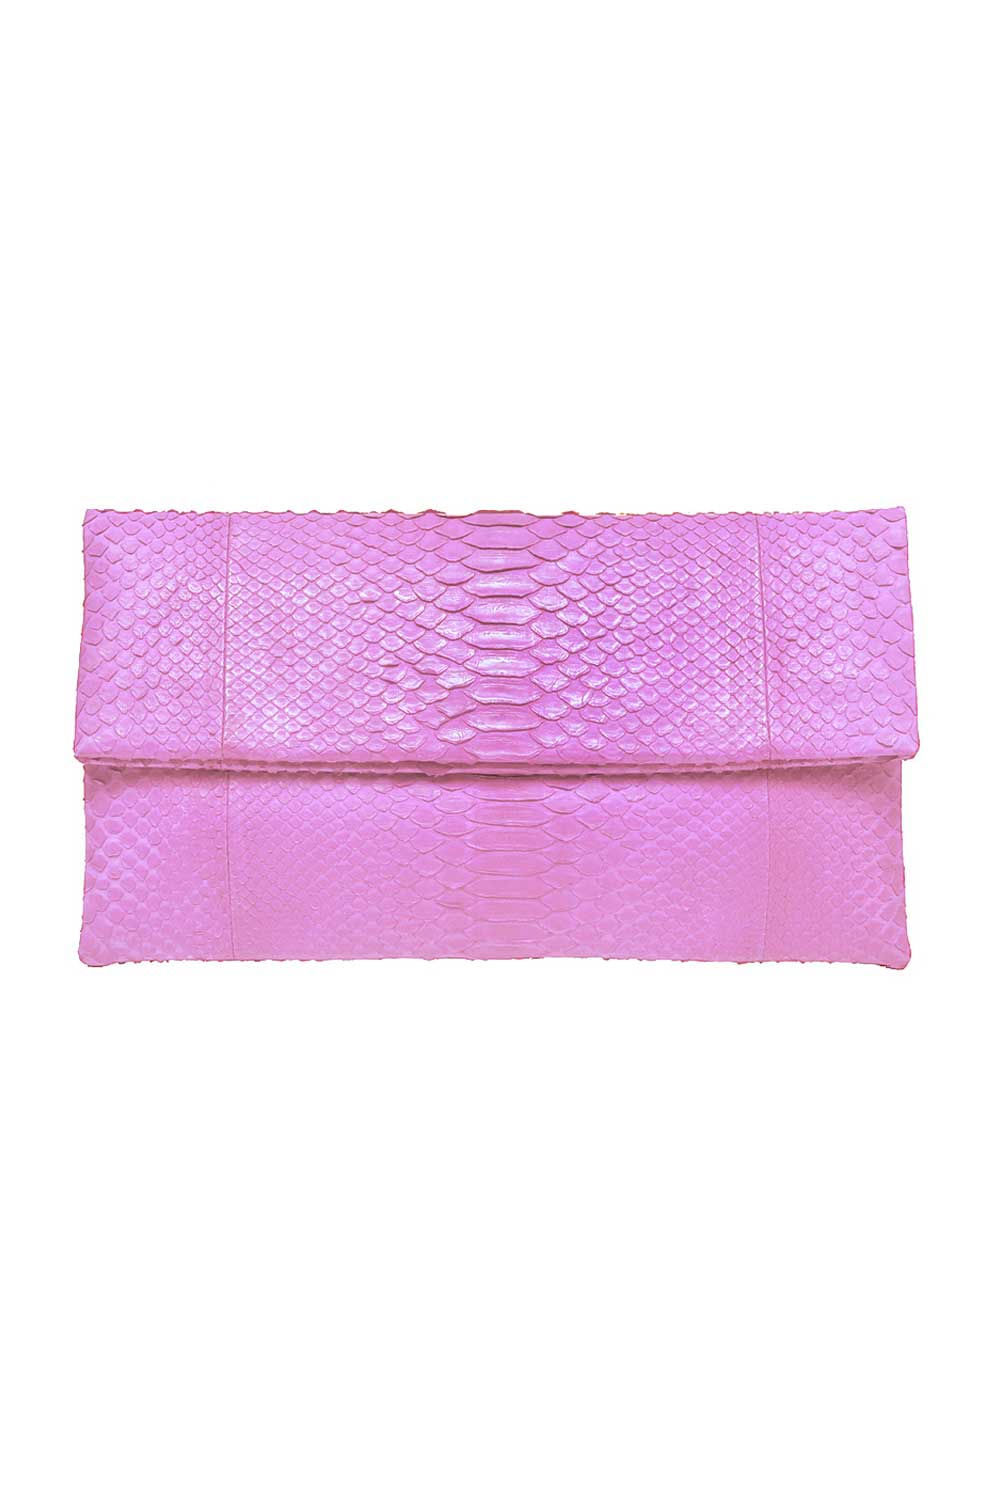 Primary New York Python Prime Clutch Soft Pink